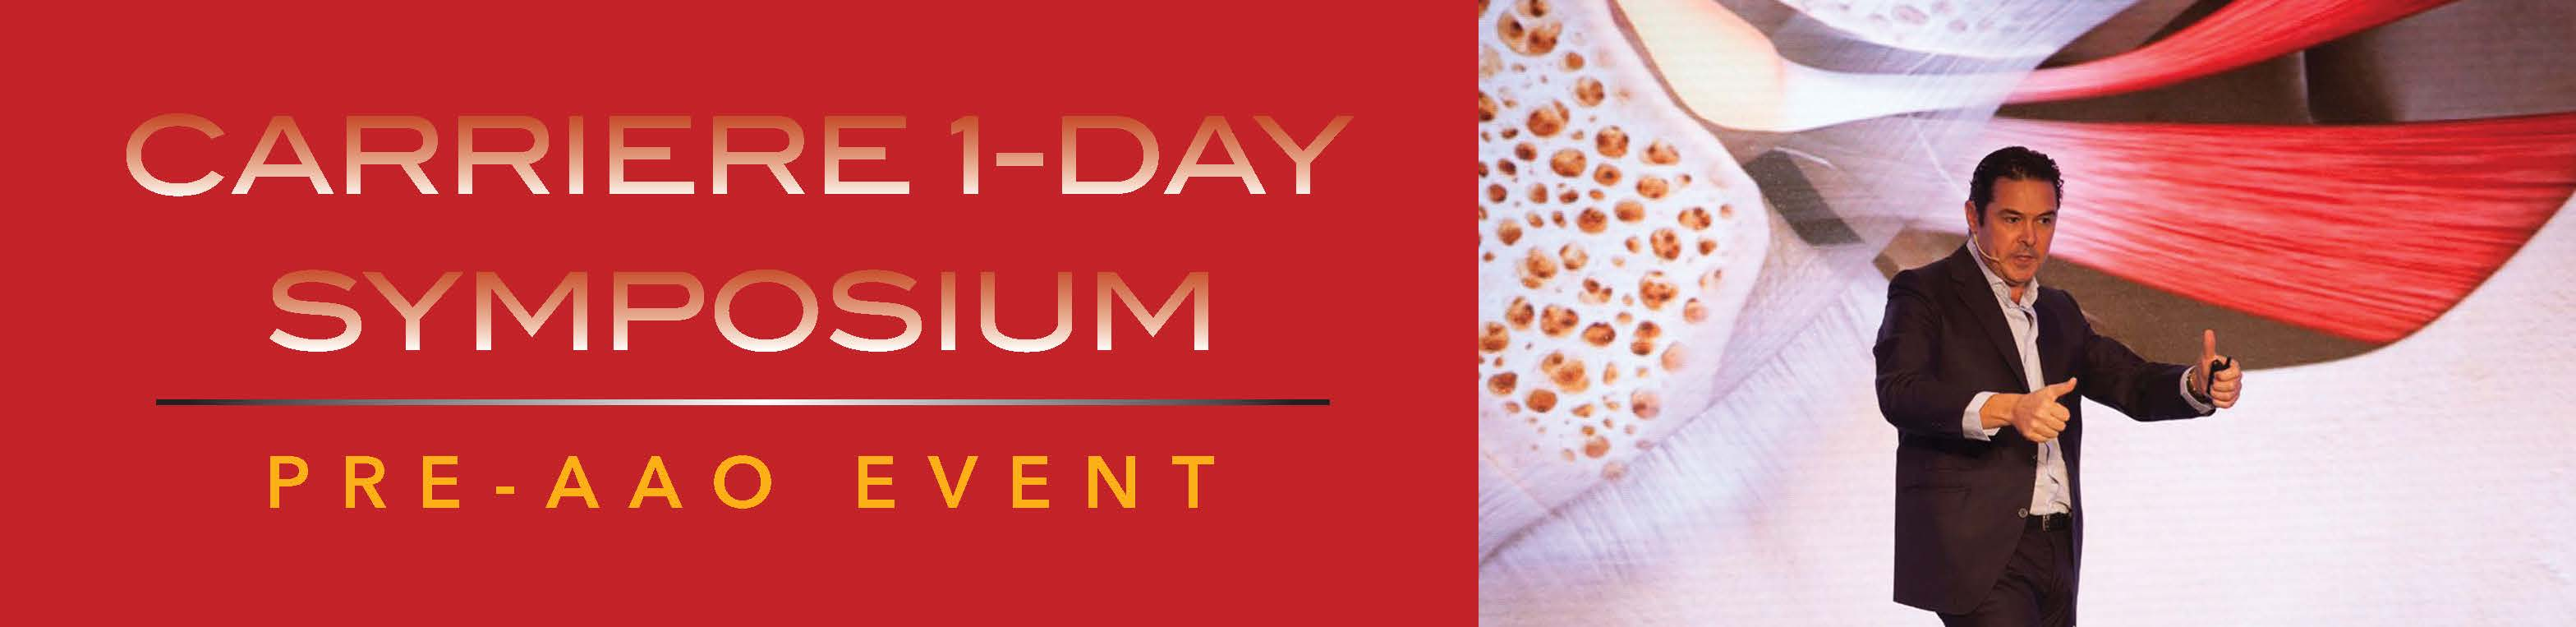 Carriere 1-Day Symposium Pre-AAO Event